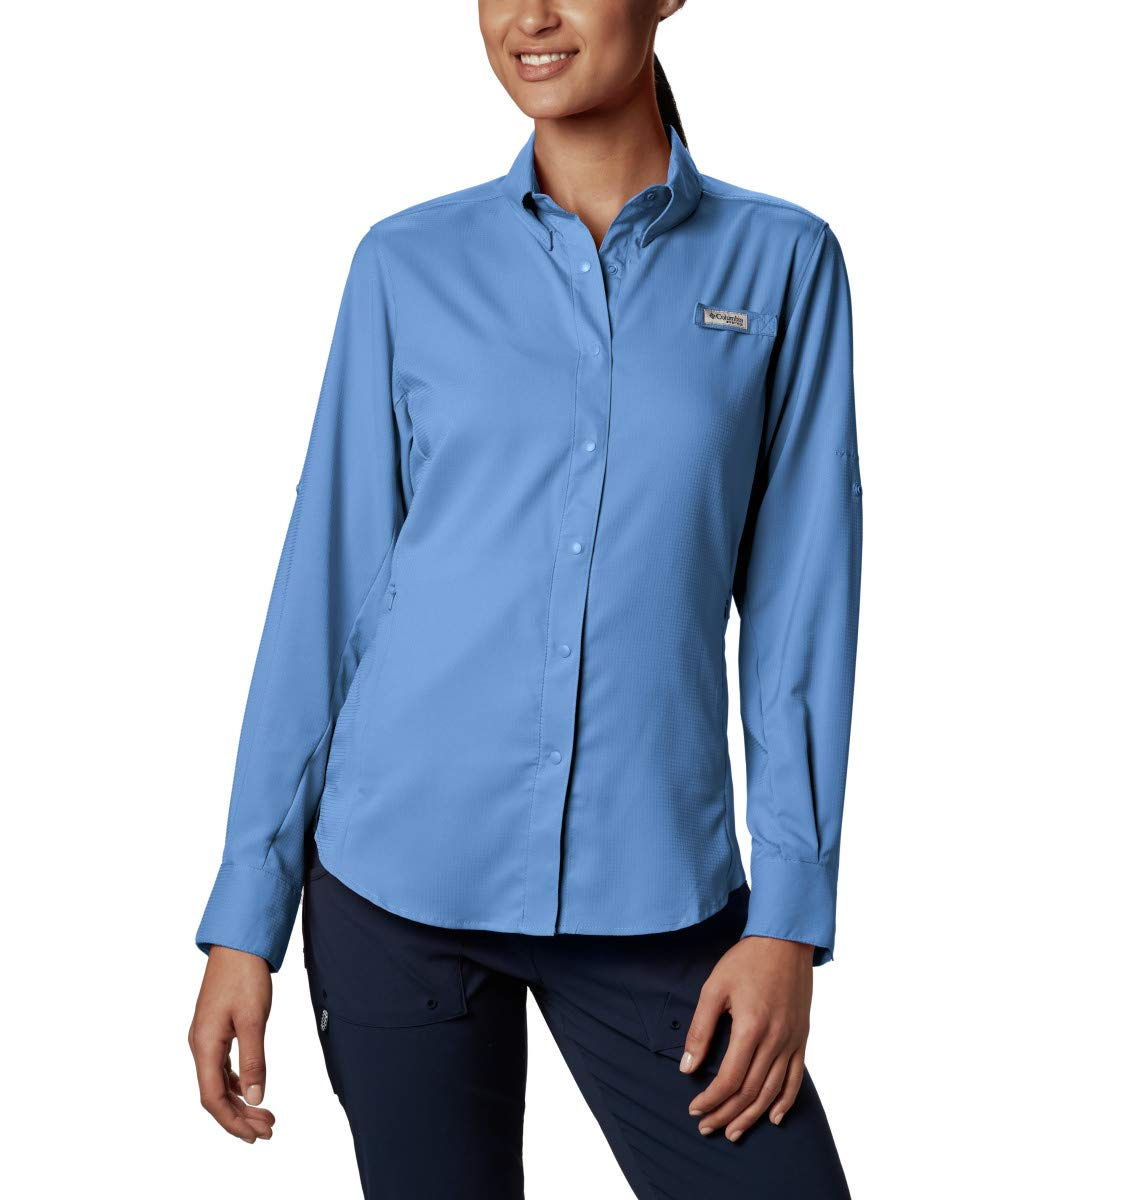 Columbia Women's PFG Tamiami II Long Sleeve Shirt , White Cap, Small by Columbia